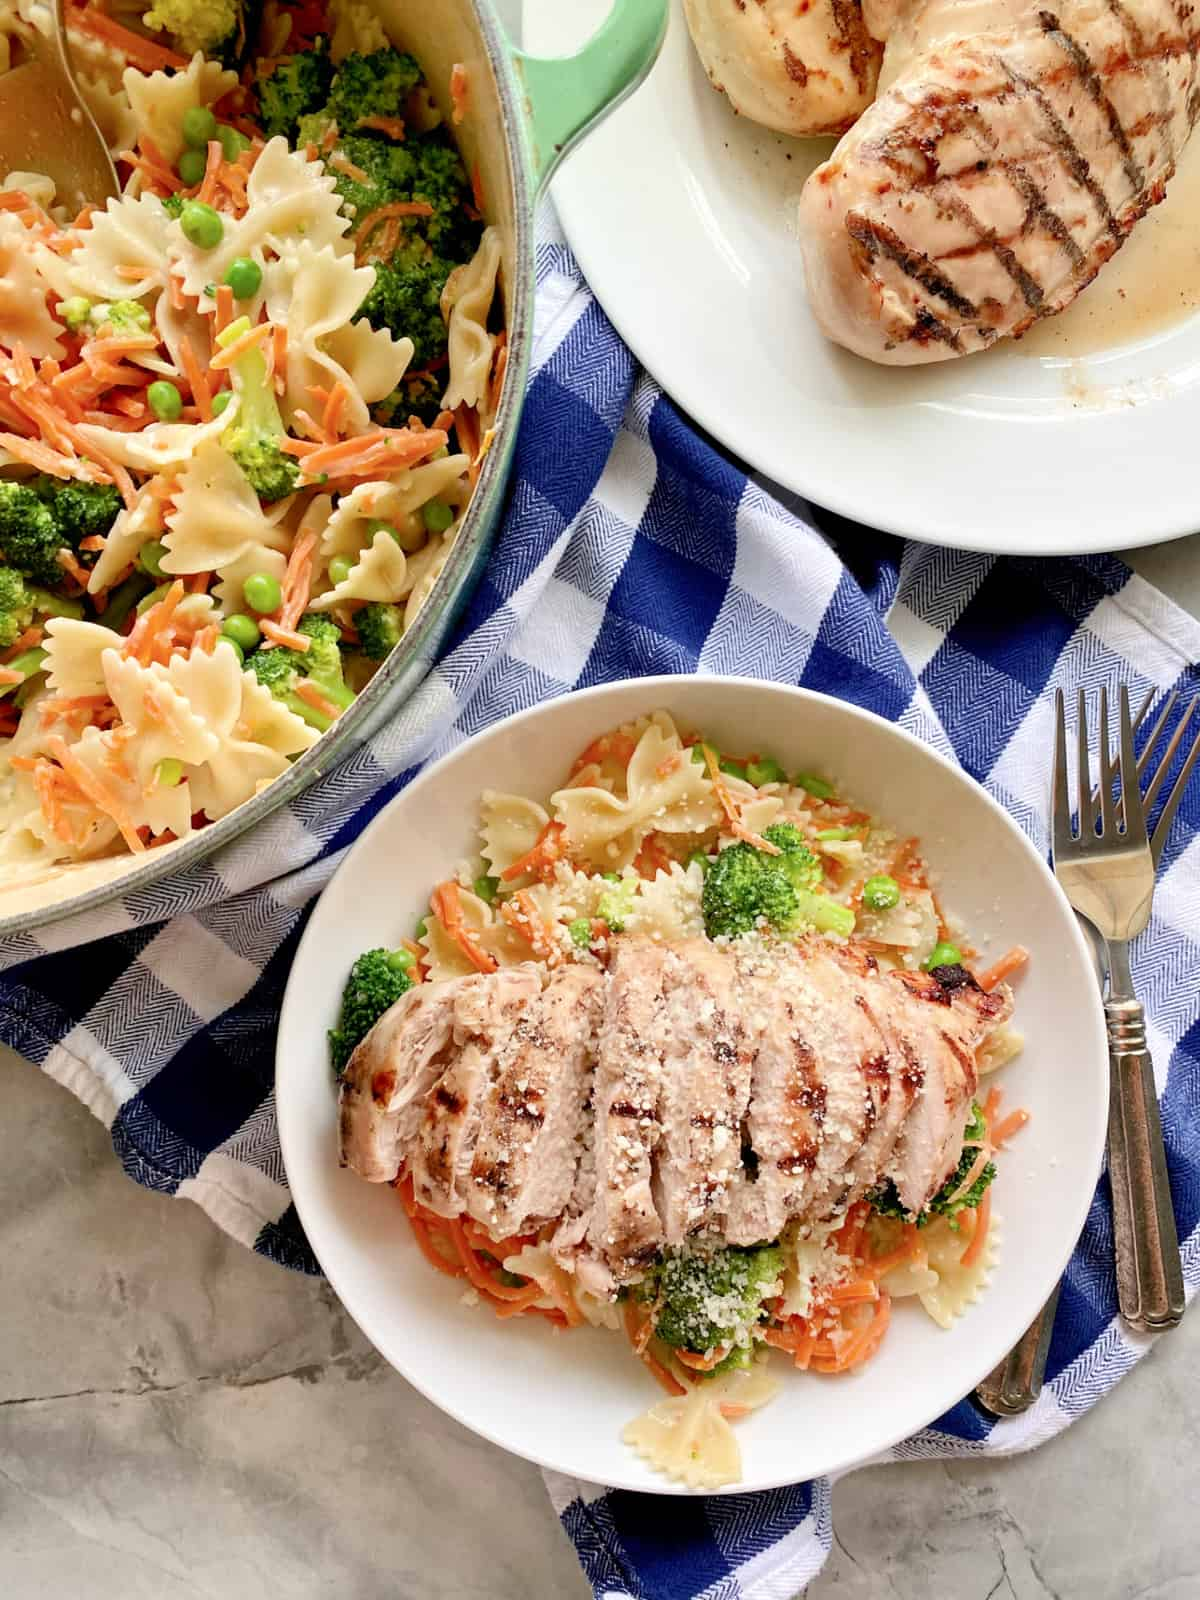 Top view of a bowl of Grilled Chicken Pasta with vegetables, a large pot with bow tie pasta and veggies and a plate of grilled chicken breast.